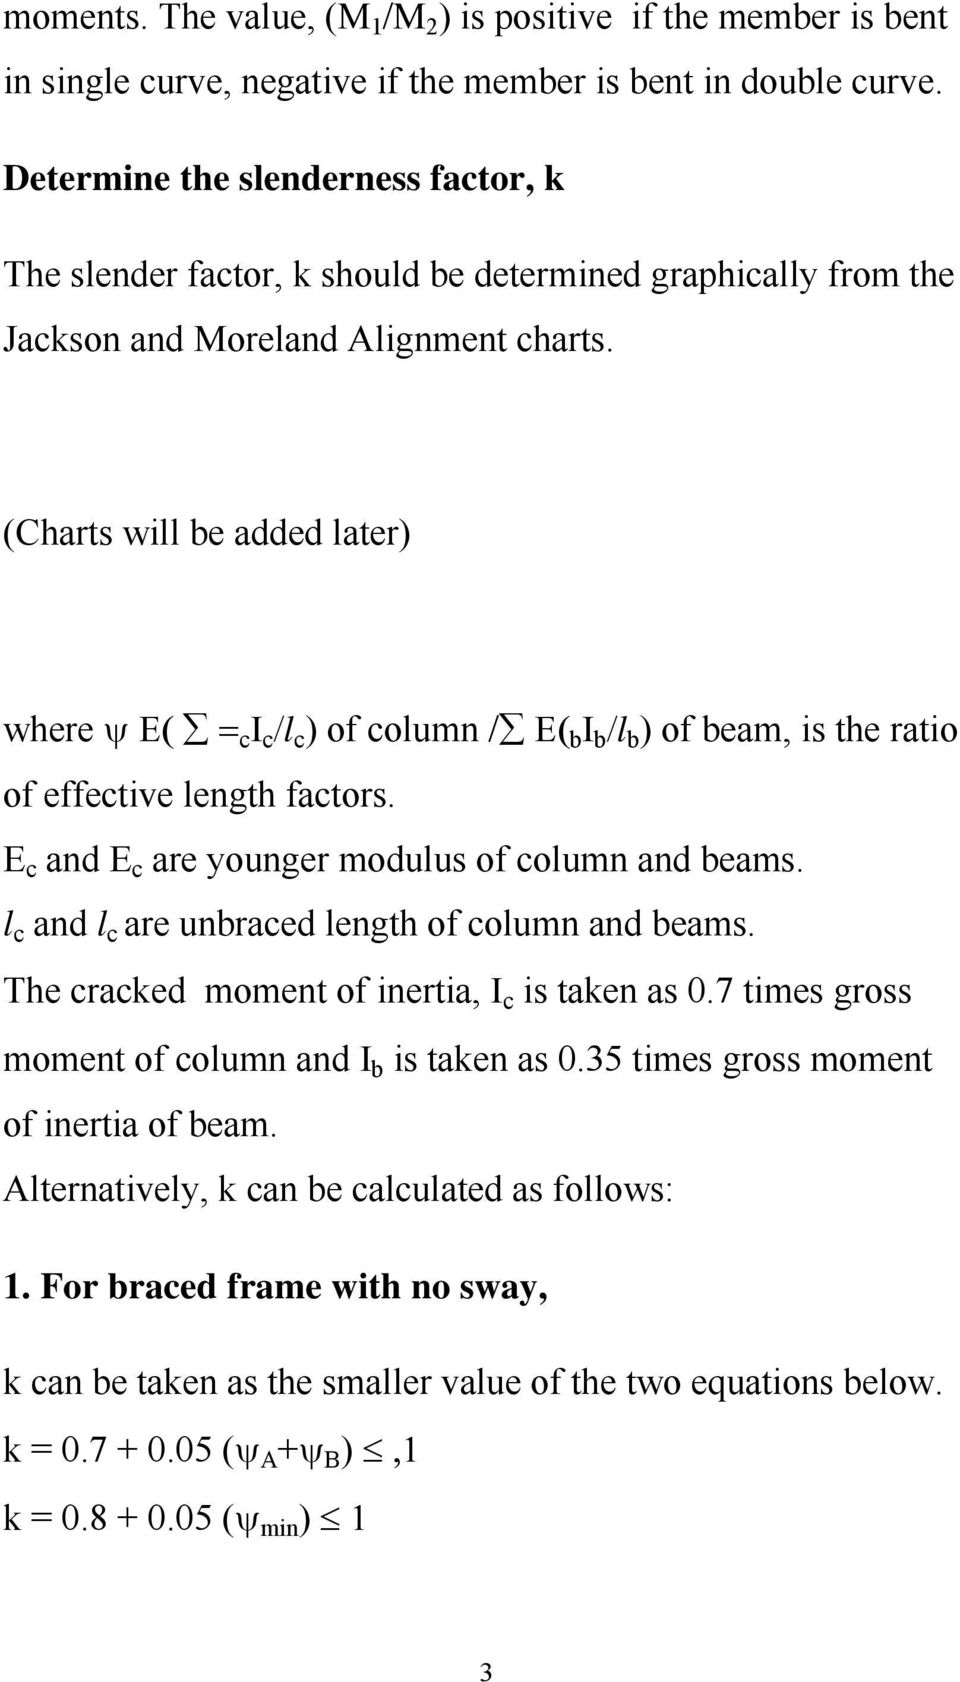 (Charts will be added later) where ψ Ε( = c Ι c /l c ) of column / Ε( b Ι b /l b ) of beam, is the ratio of effective length factors. E c and E c are younger modulus of column and beams.